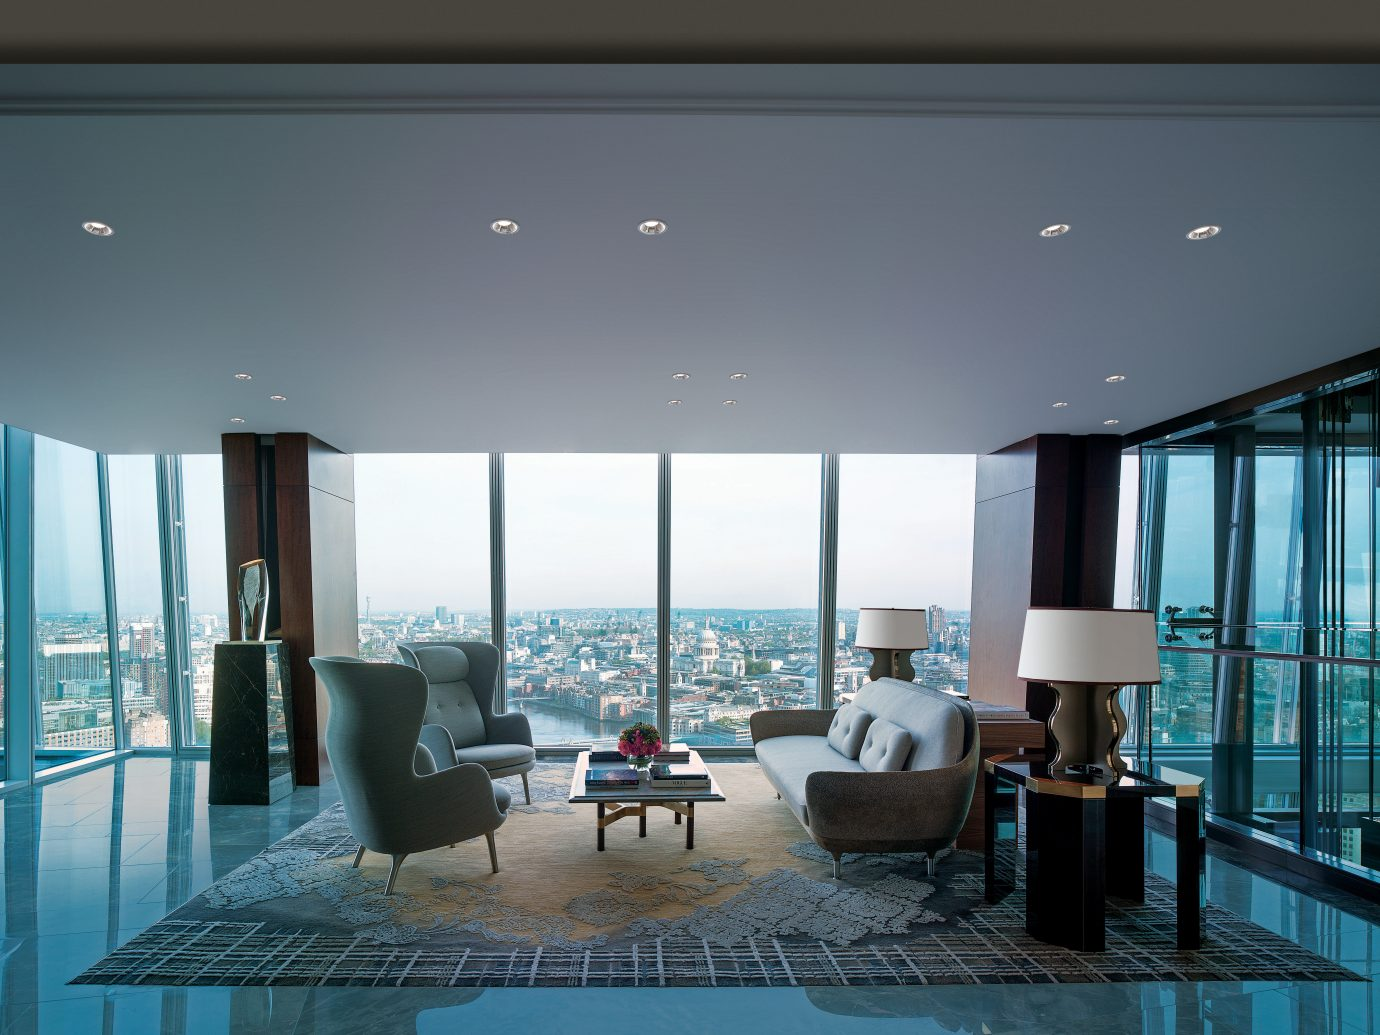 City Hotels Living Lounge Luxury Travel Modern Scenic views indoor room floor property ceiling condominium Architecture estate living room interior design swimming pool furniture lighting home daylighting Lobby Design dining room apartment window covering headquarters window area flat several